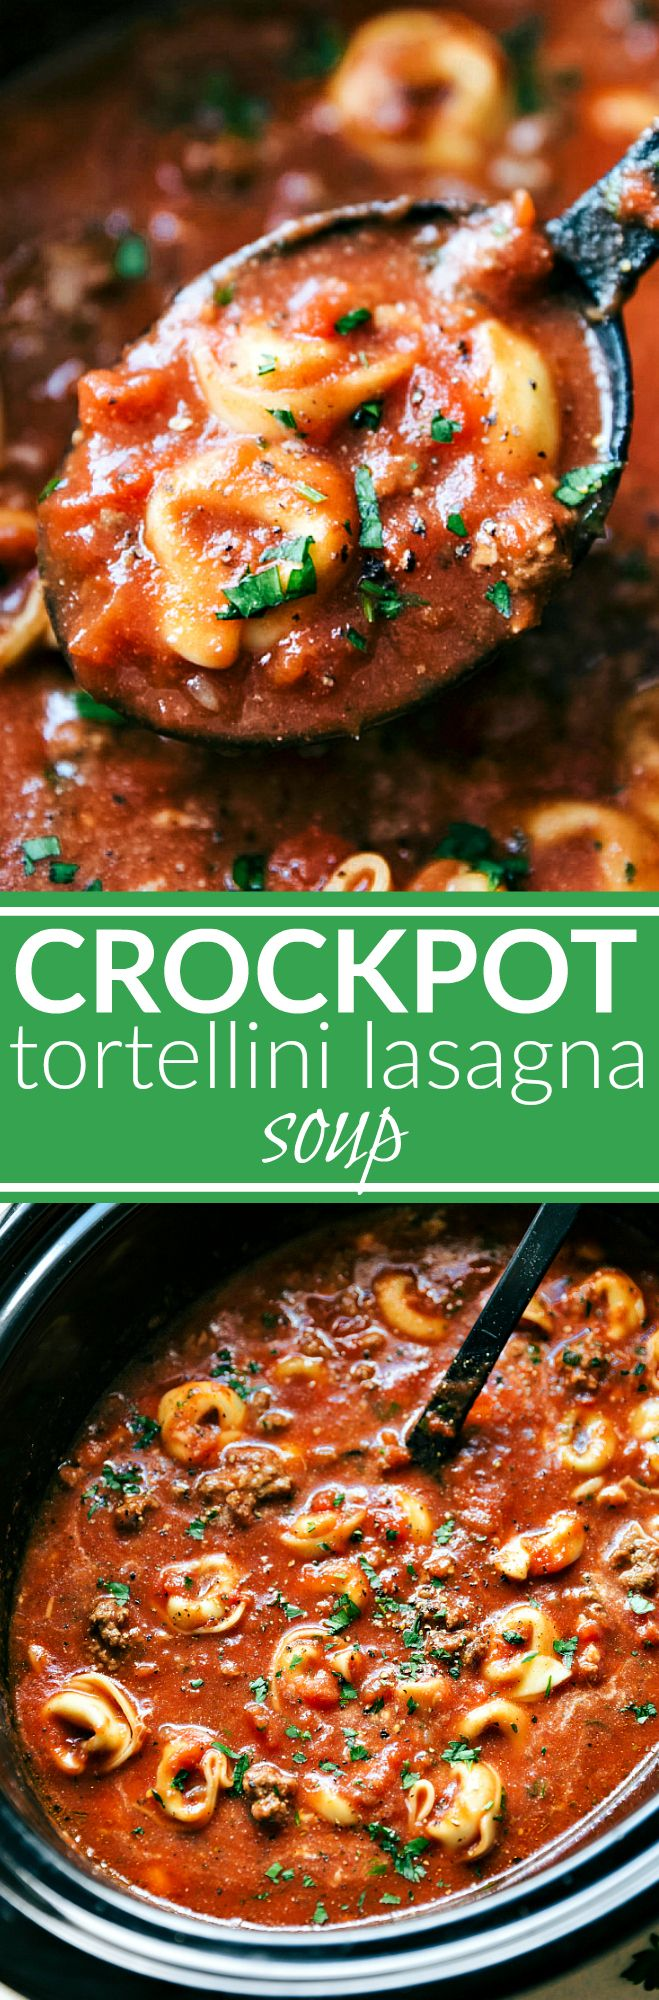 Slow Cooker Tortellini Lasagna ~ A crockpot lasagna soup made with cheese-filled tortellini. This soup is simple to make, tastes just like lasagna in soup form, and is a sure crowd pleaser!